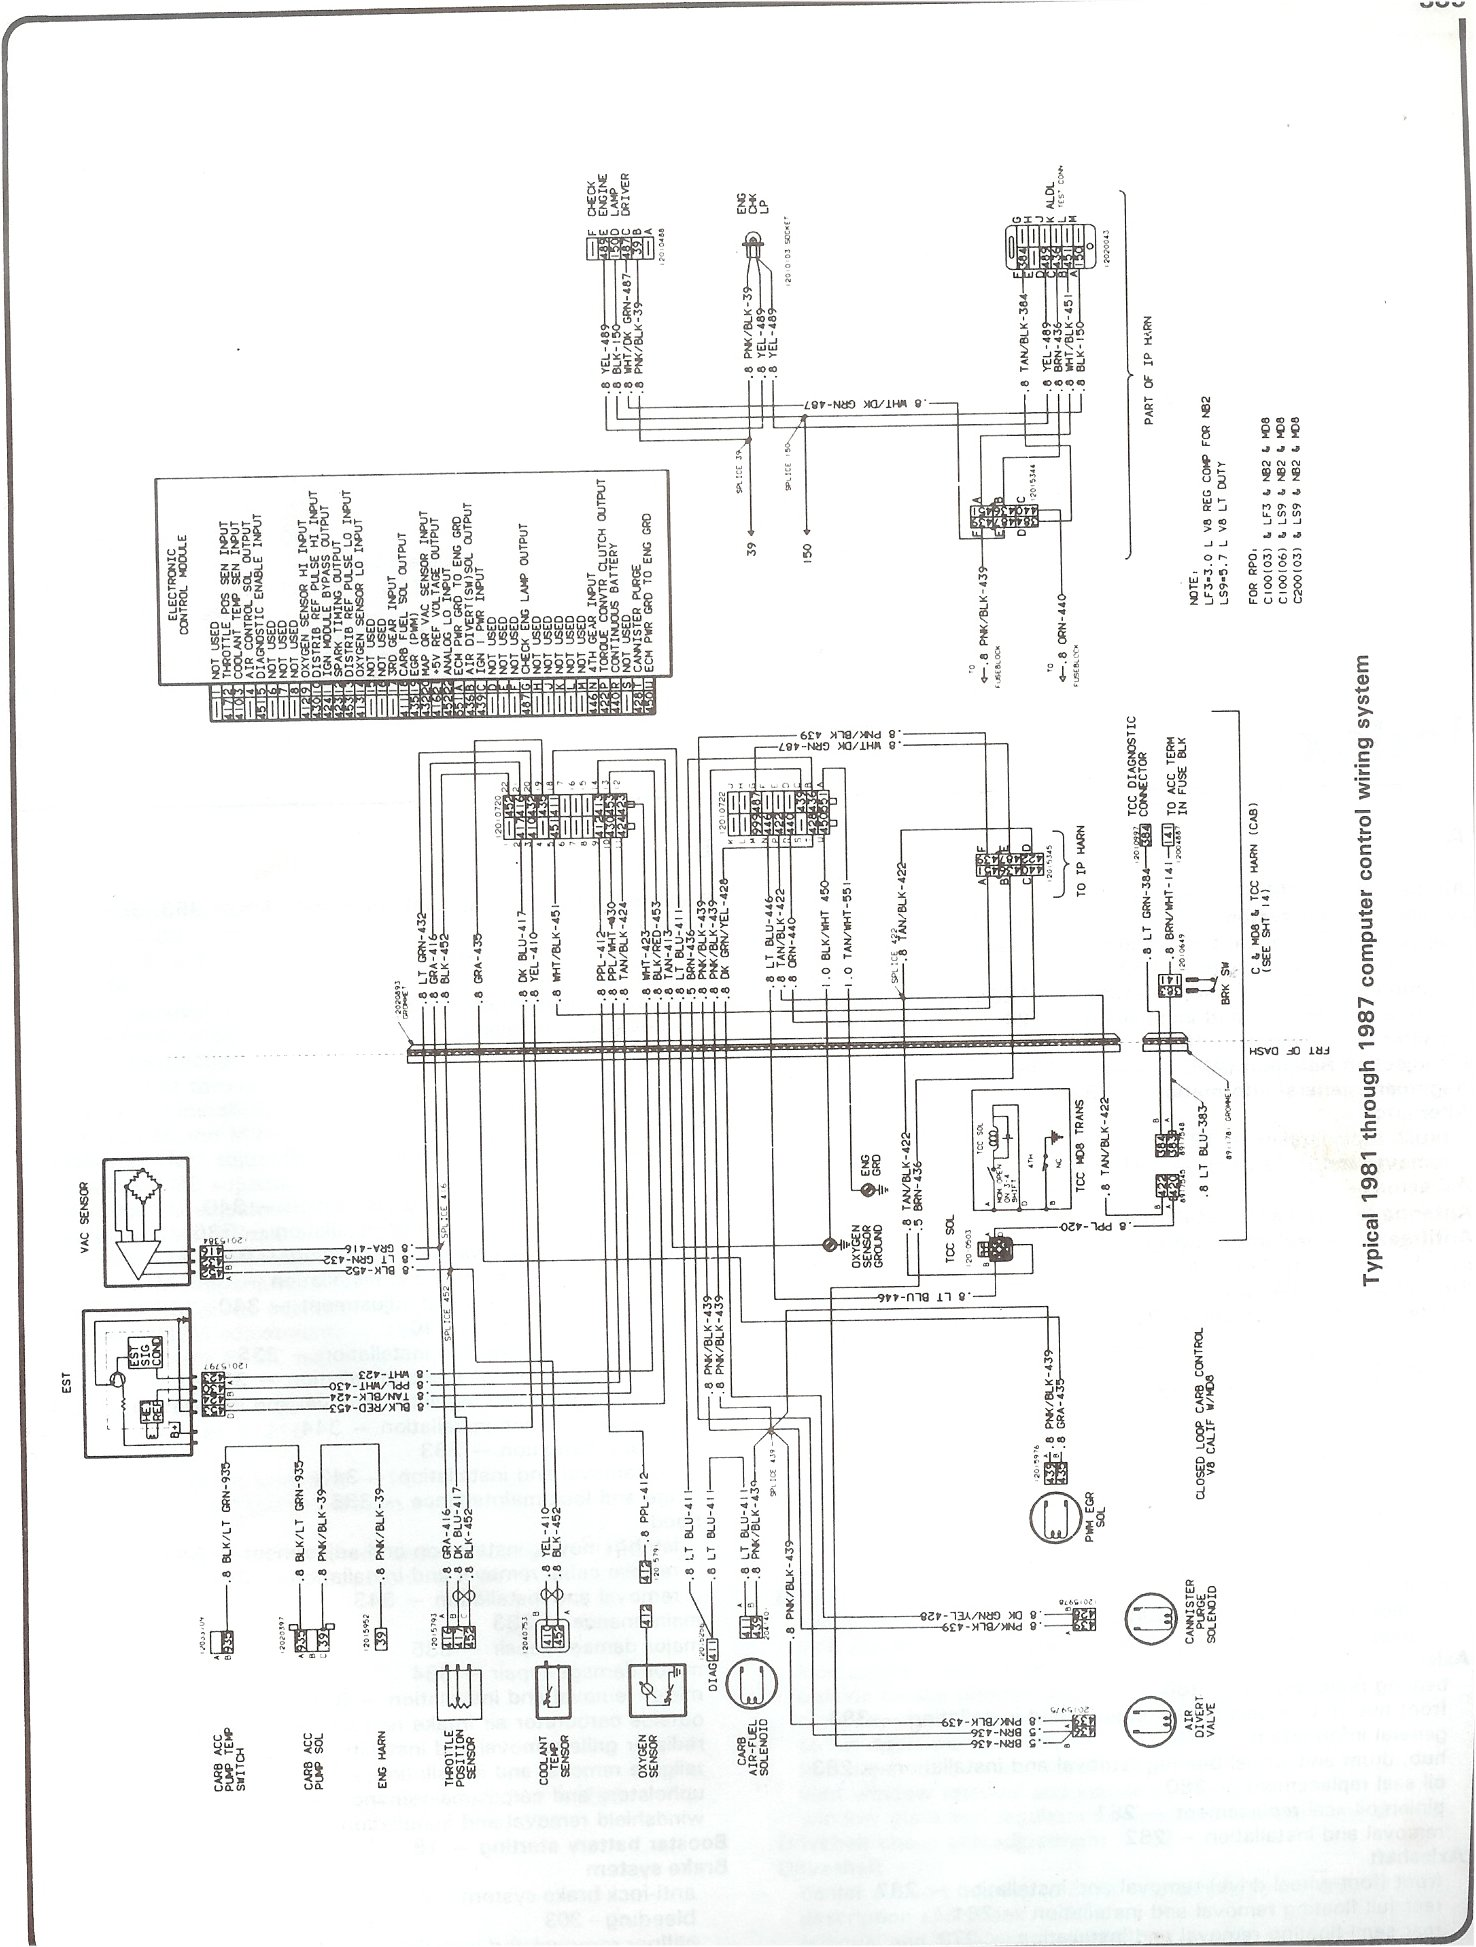 81 87_computer_control_wiring complete 73 87 wiring diagrams 1986 chevy truck wiring harness at alyssarenee.co